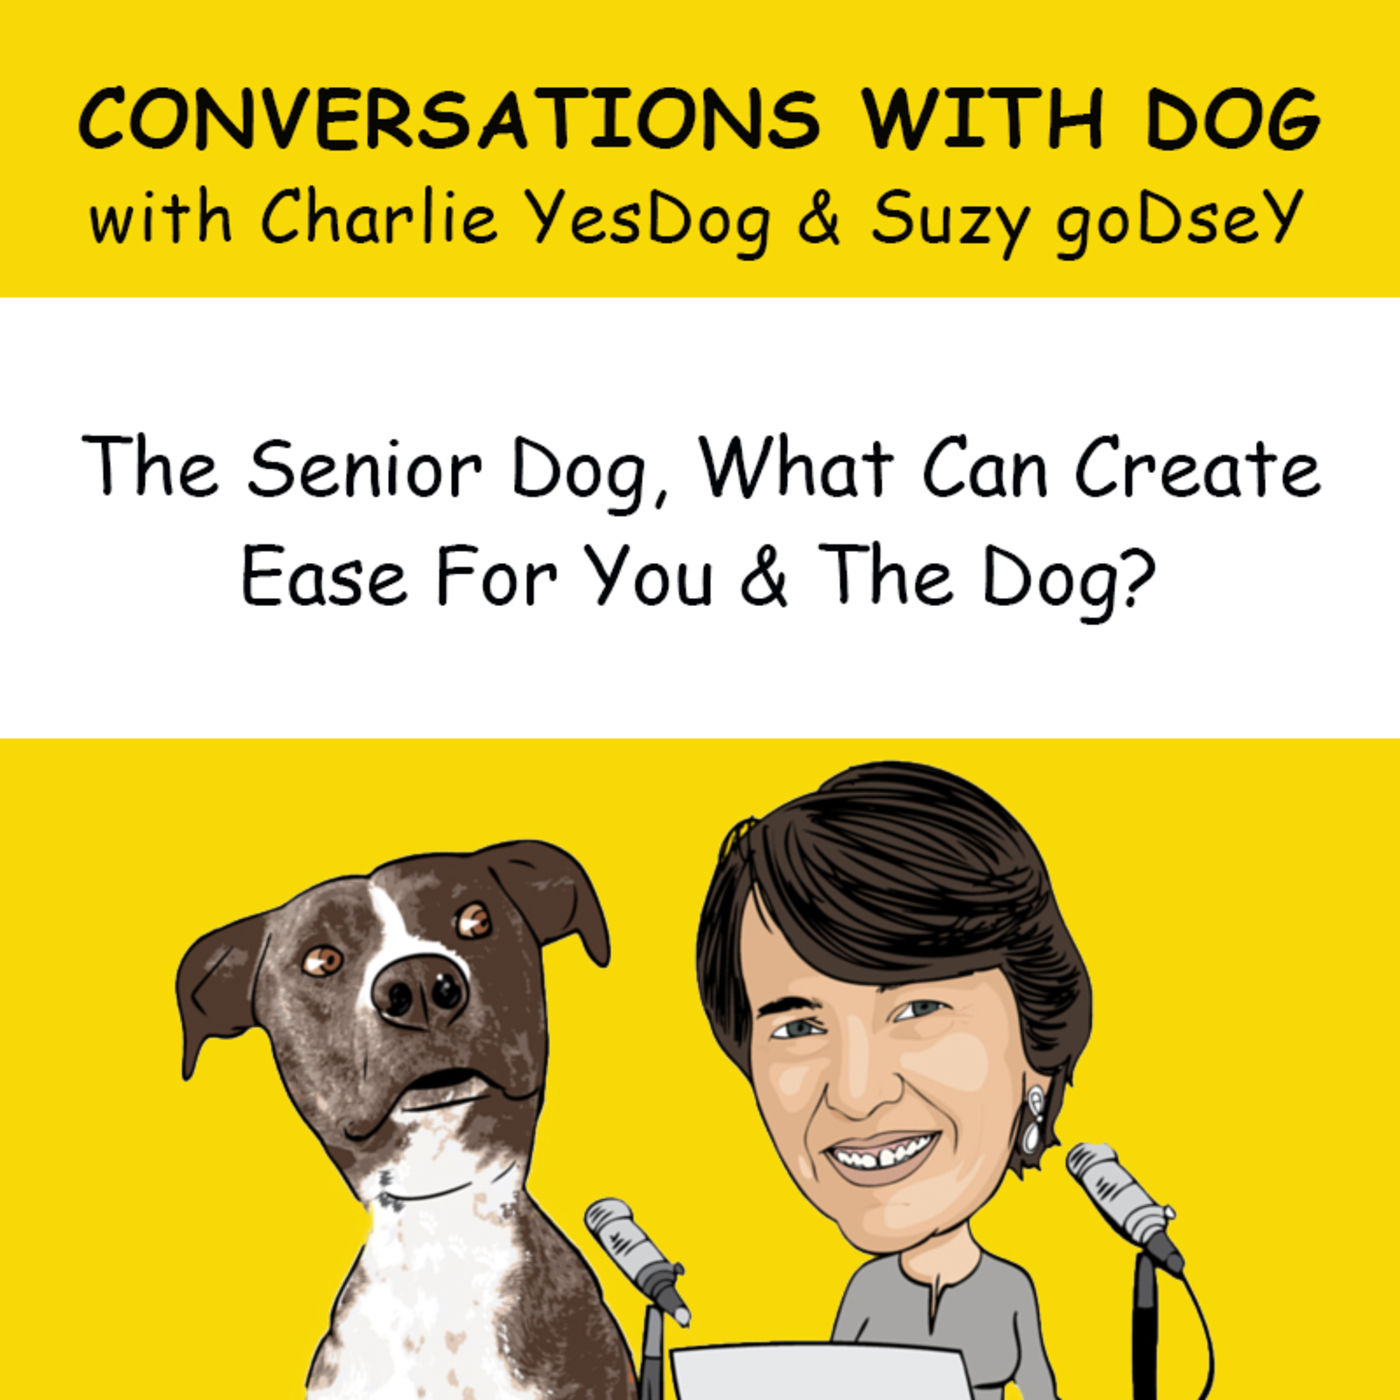 The Senior Dog, what can create ease for you and the dog?